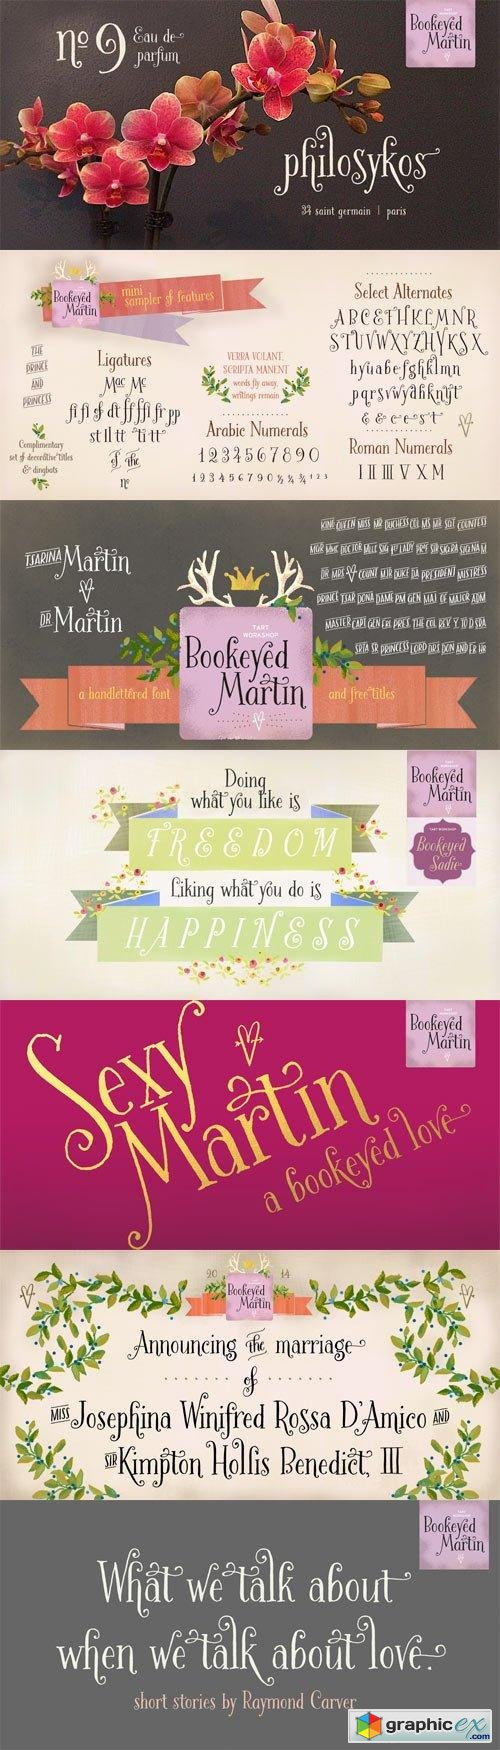 Bookeyed Martin Font Family - 2 Fonts for $30